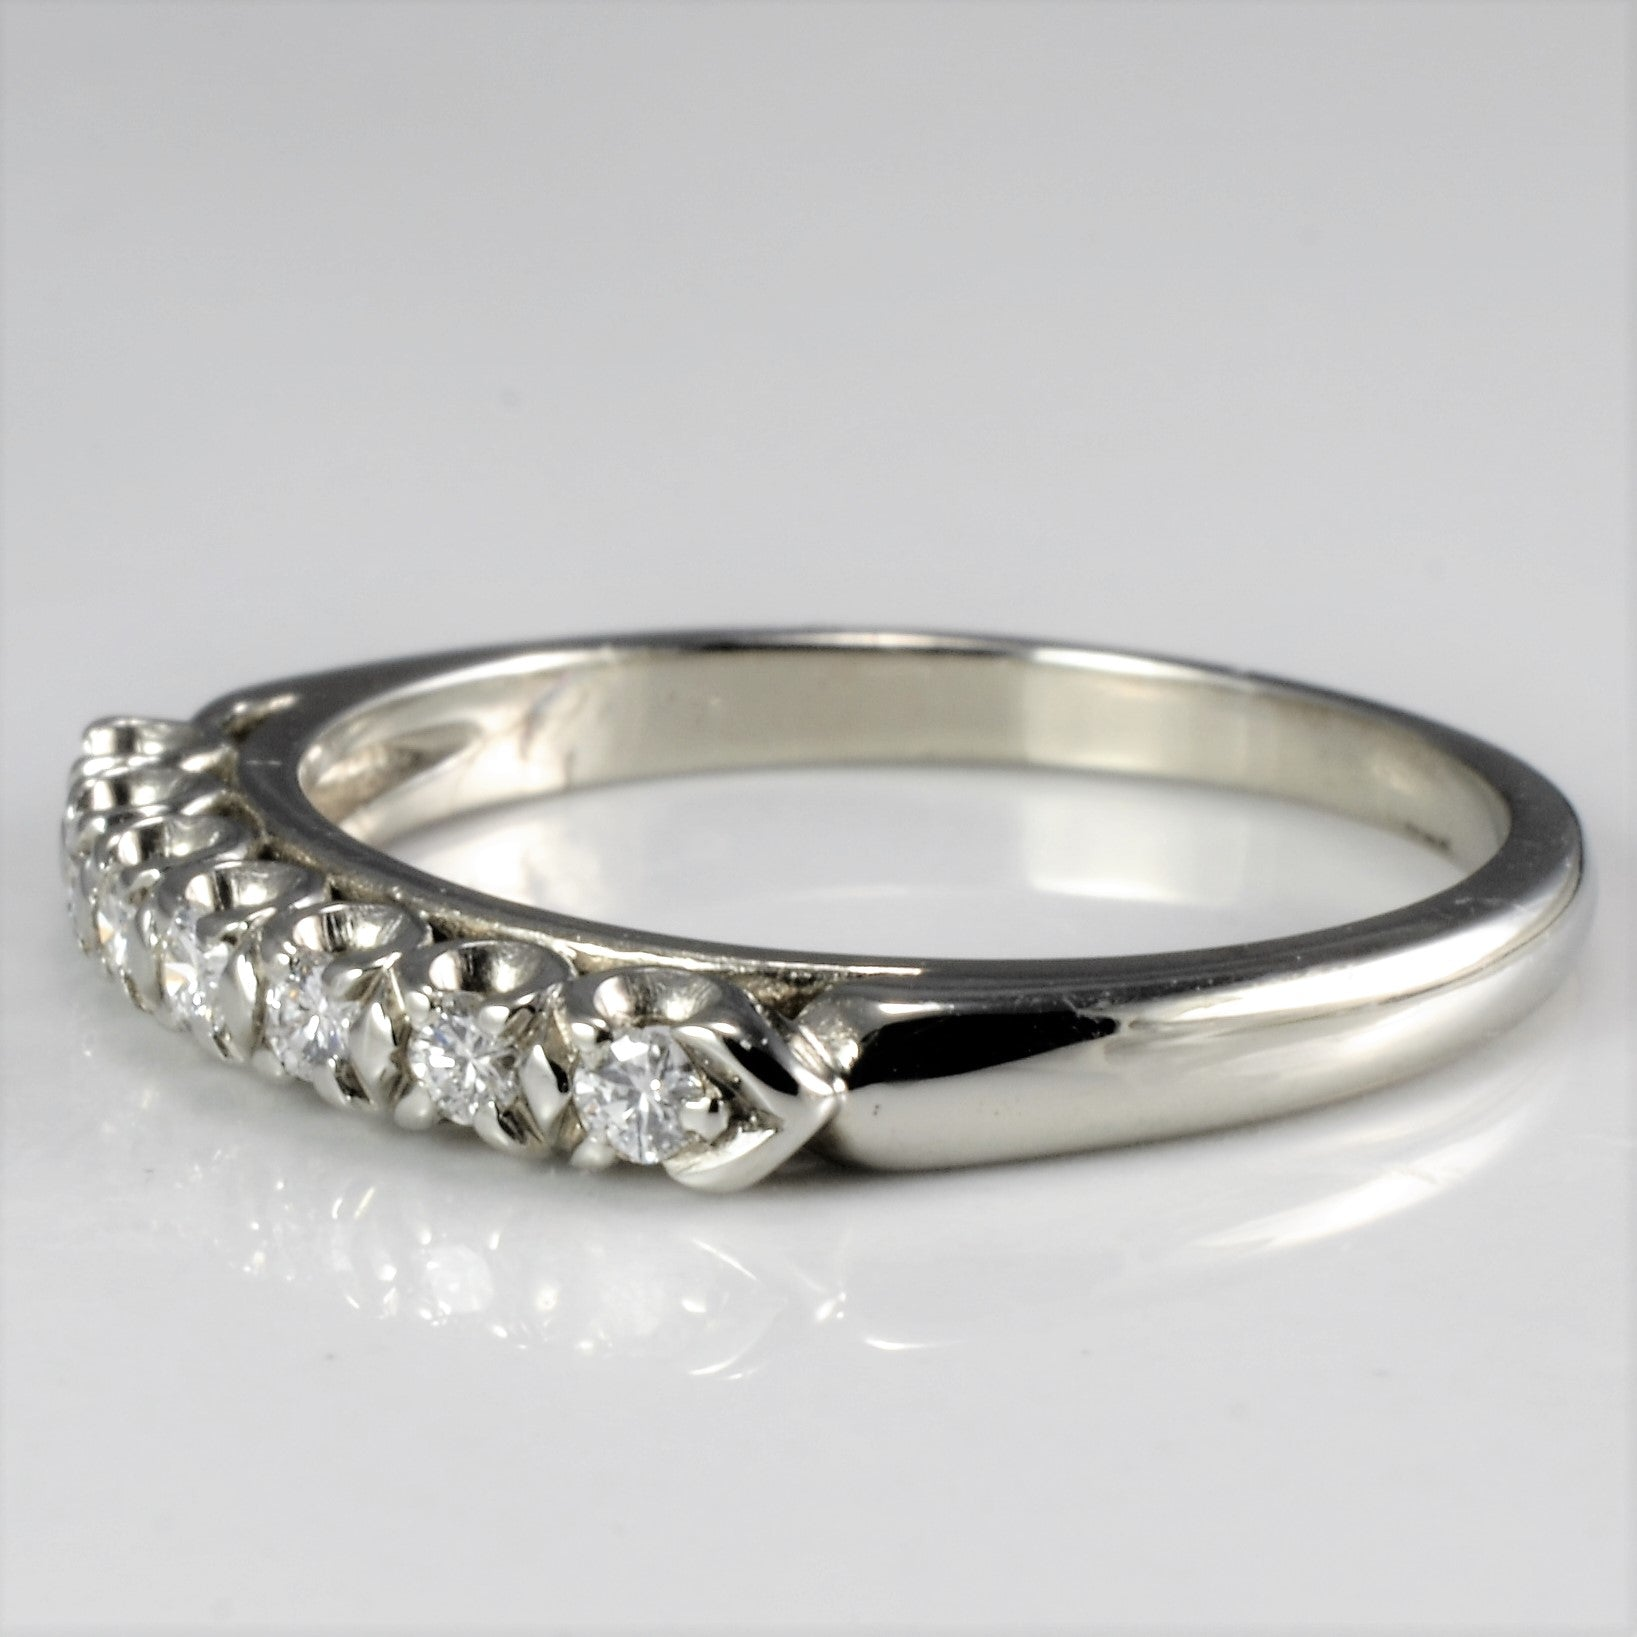 Claw Set Diamond Wedding Band | 0.21 ctw, SZ 4.75 |